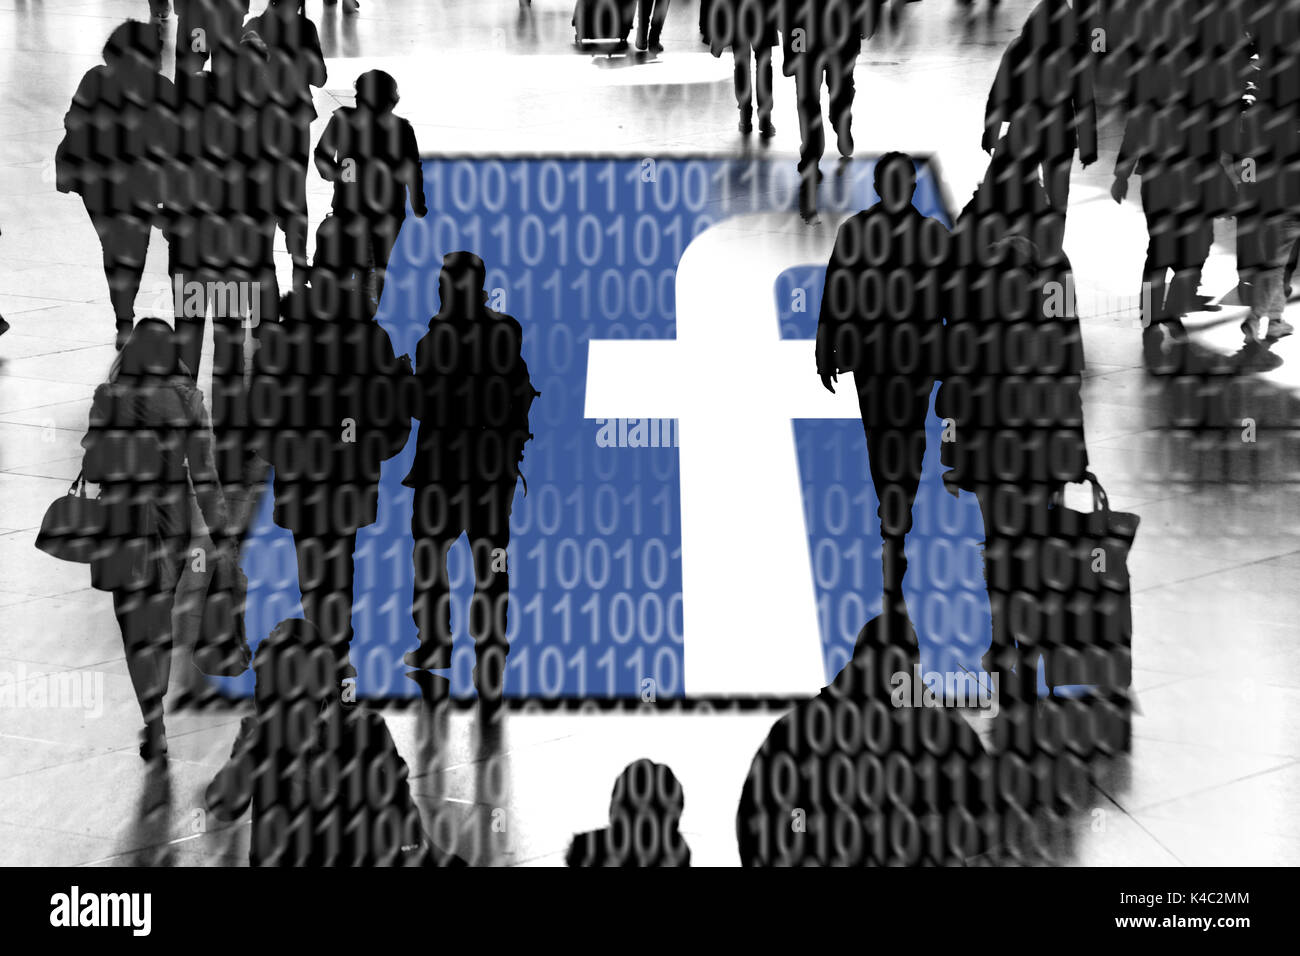 Facebook Sign With Silhouettes Of People And Binary Code - Stock Image